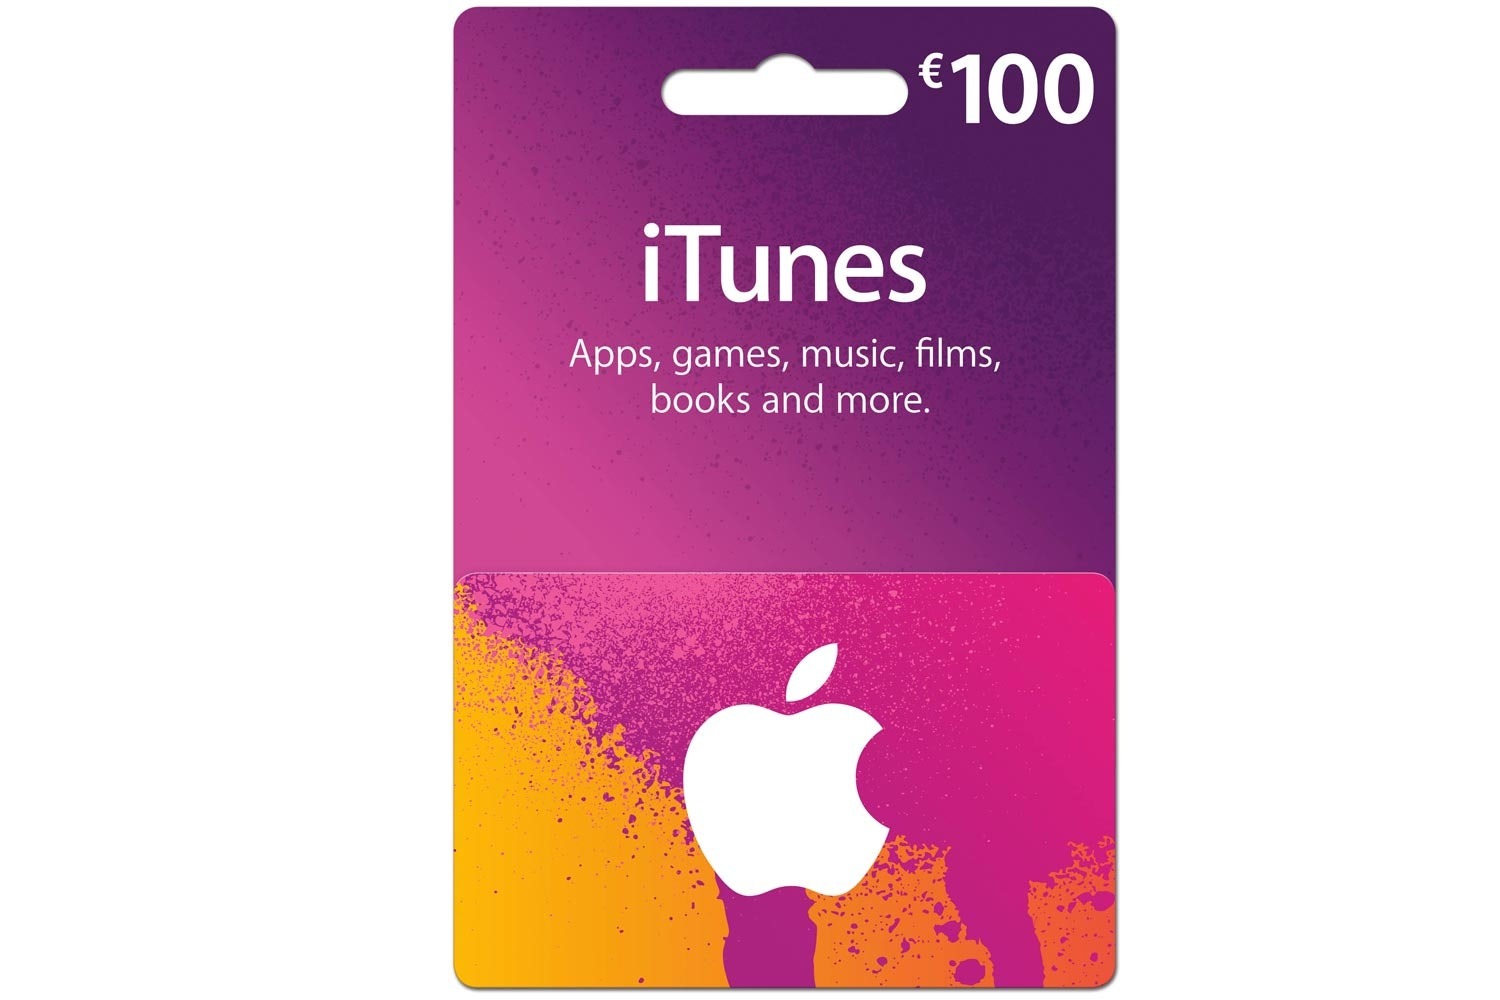 image regarding Itunes Printable Gift Card called \u20ac100 iTunes Present Card